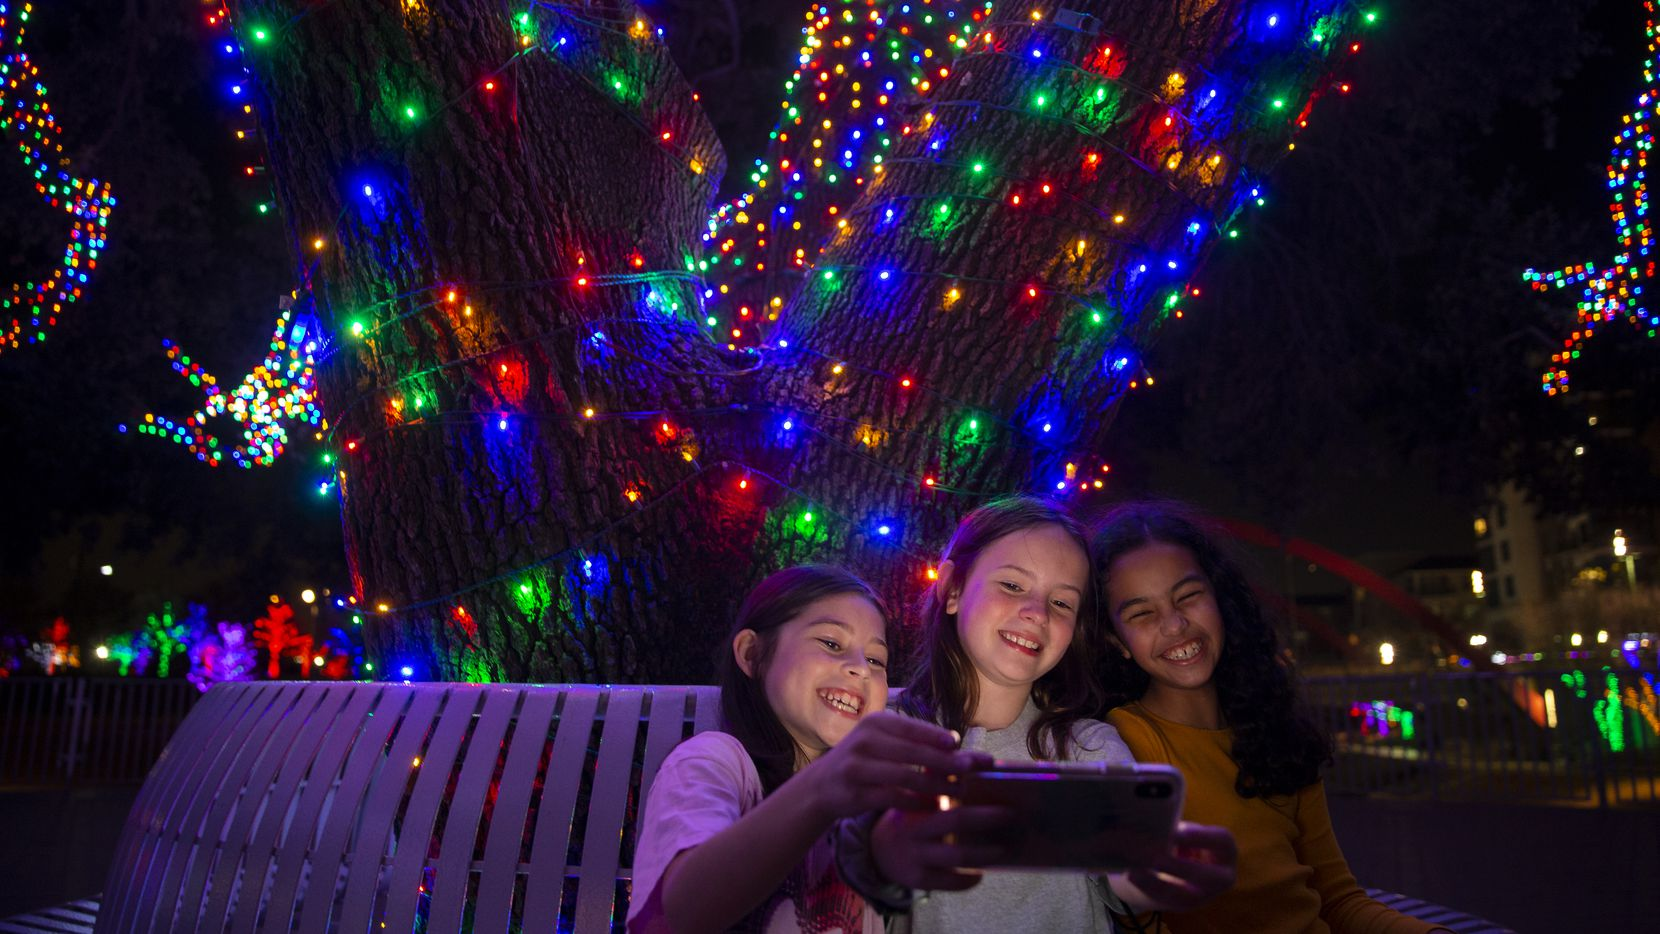 Best Christmas Lights In Dfw 2020 The top places to see Christmas lights and other holiday displays